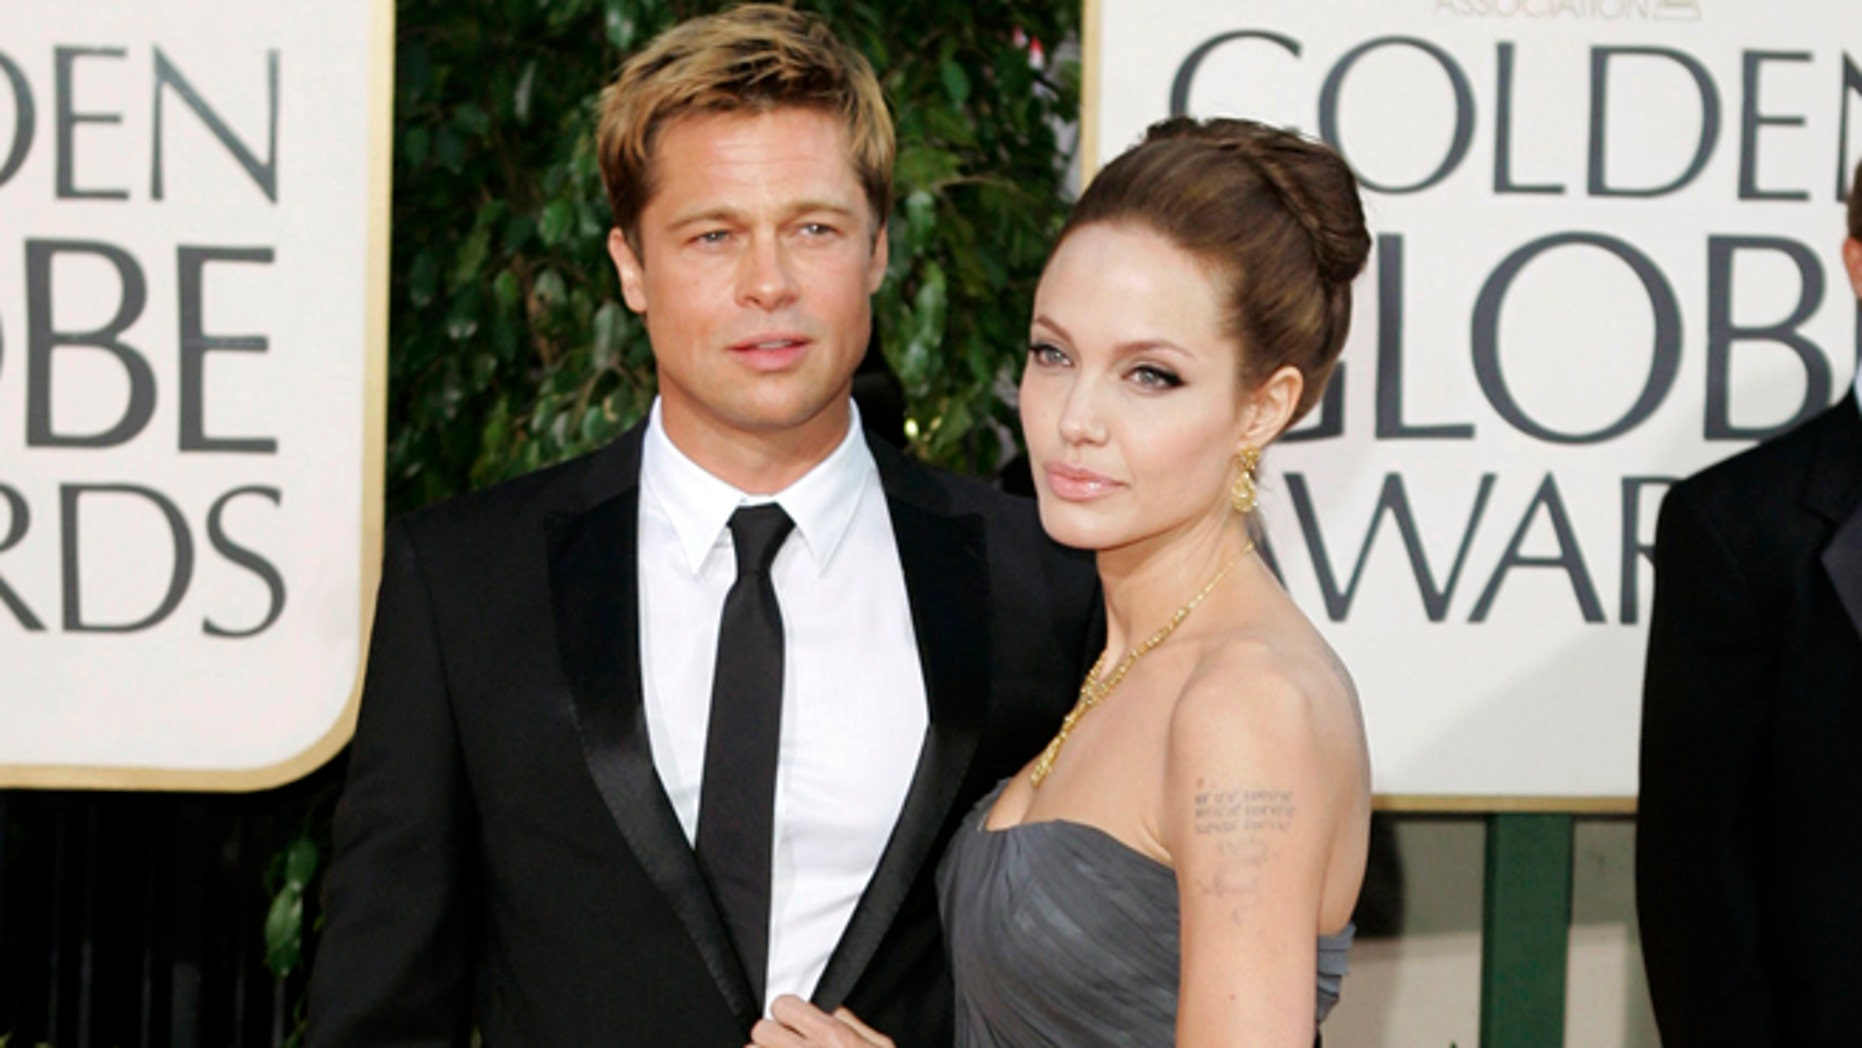 Brad Pitt and Angelina Jolie are selling their New Orleans home.